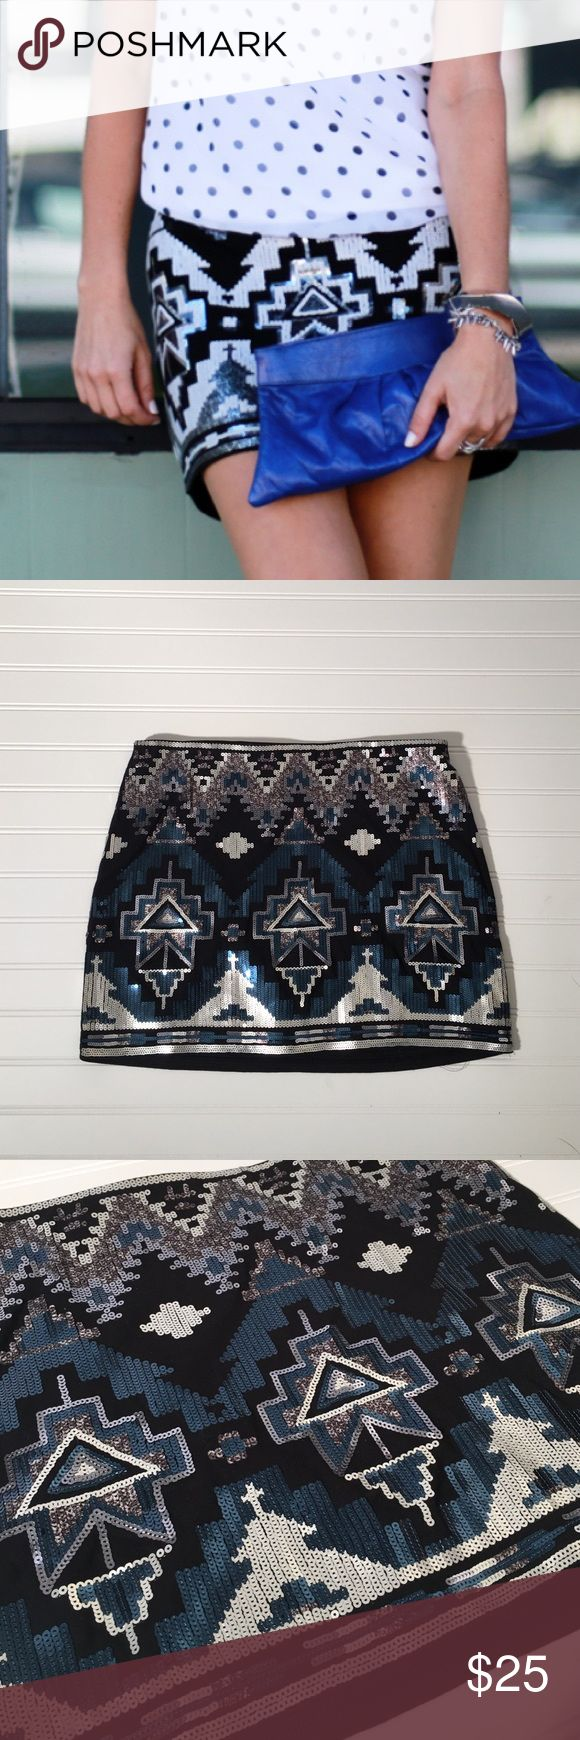 Express Aztec Sequin Skirt Express Aztec Sequin Skirt, blue, black and silver, sequins in great condition, only been worn once. Express Skirts Mini